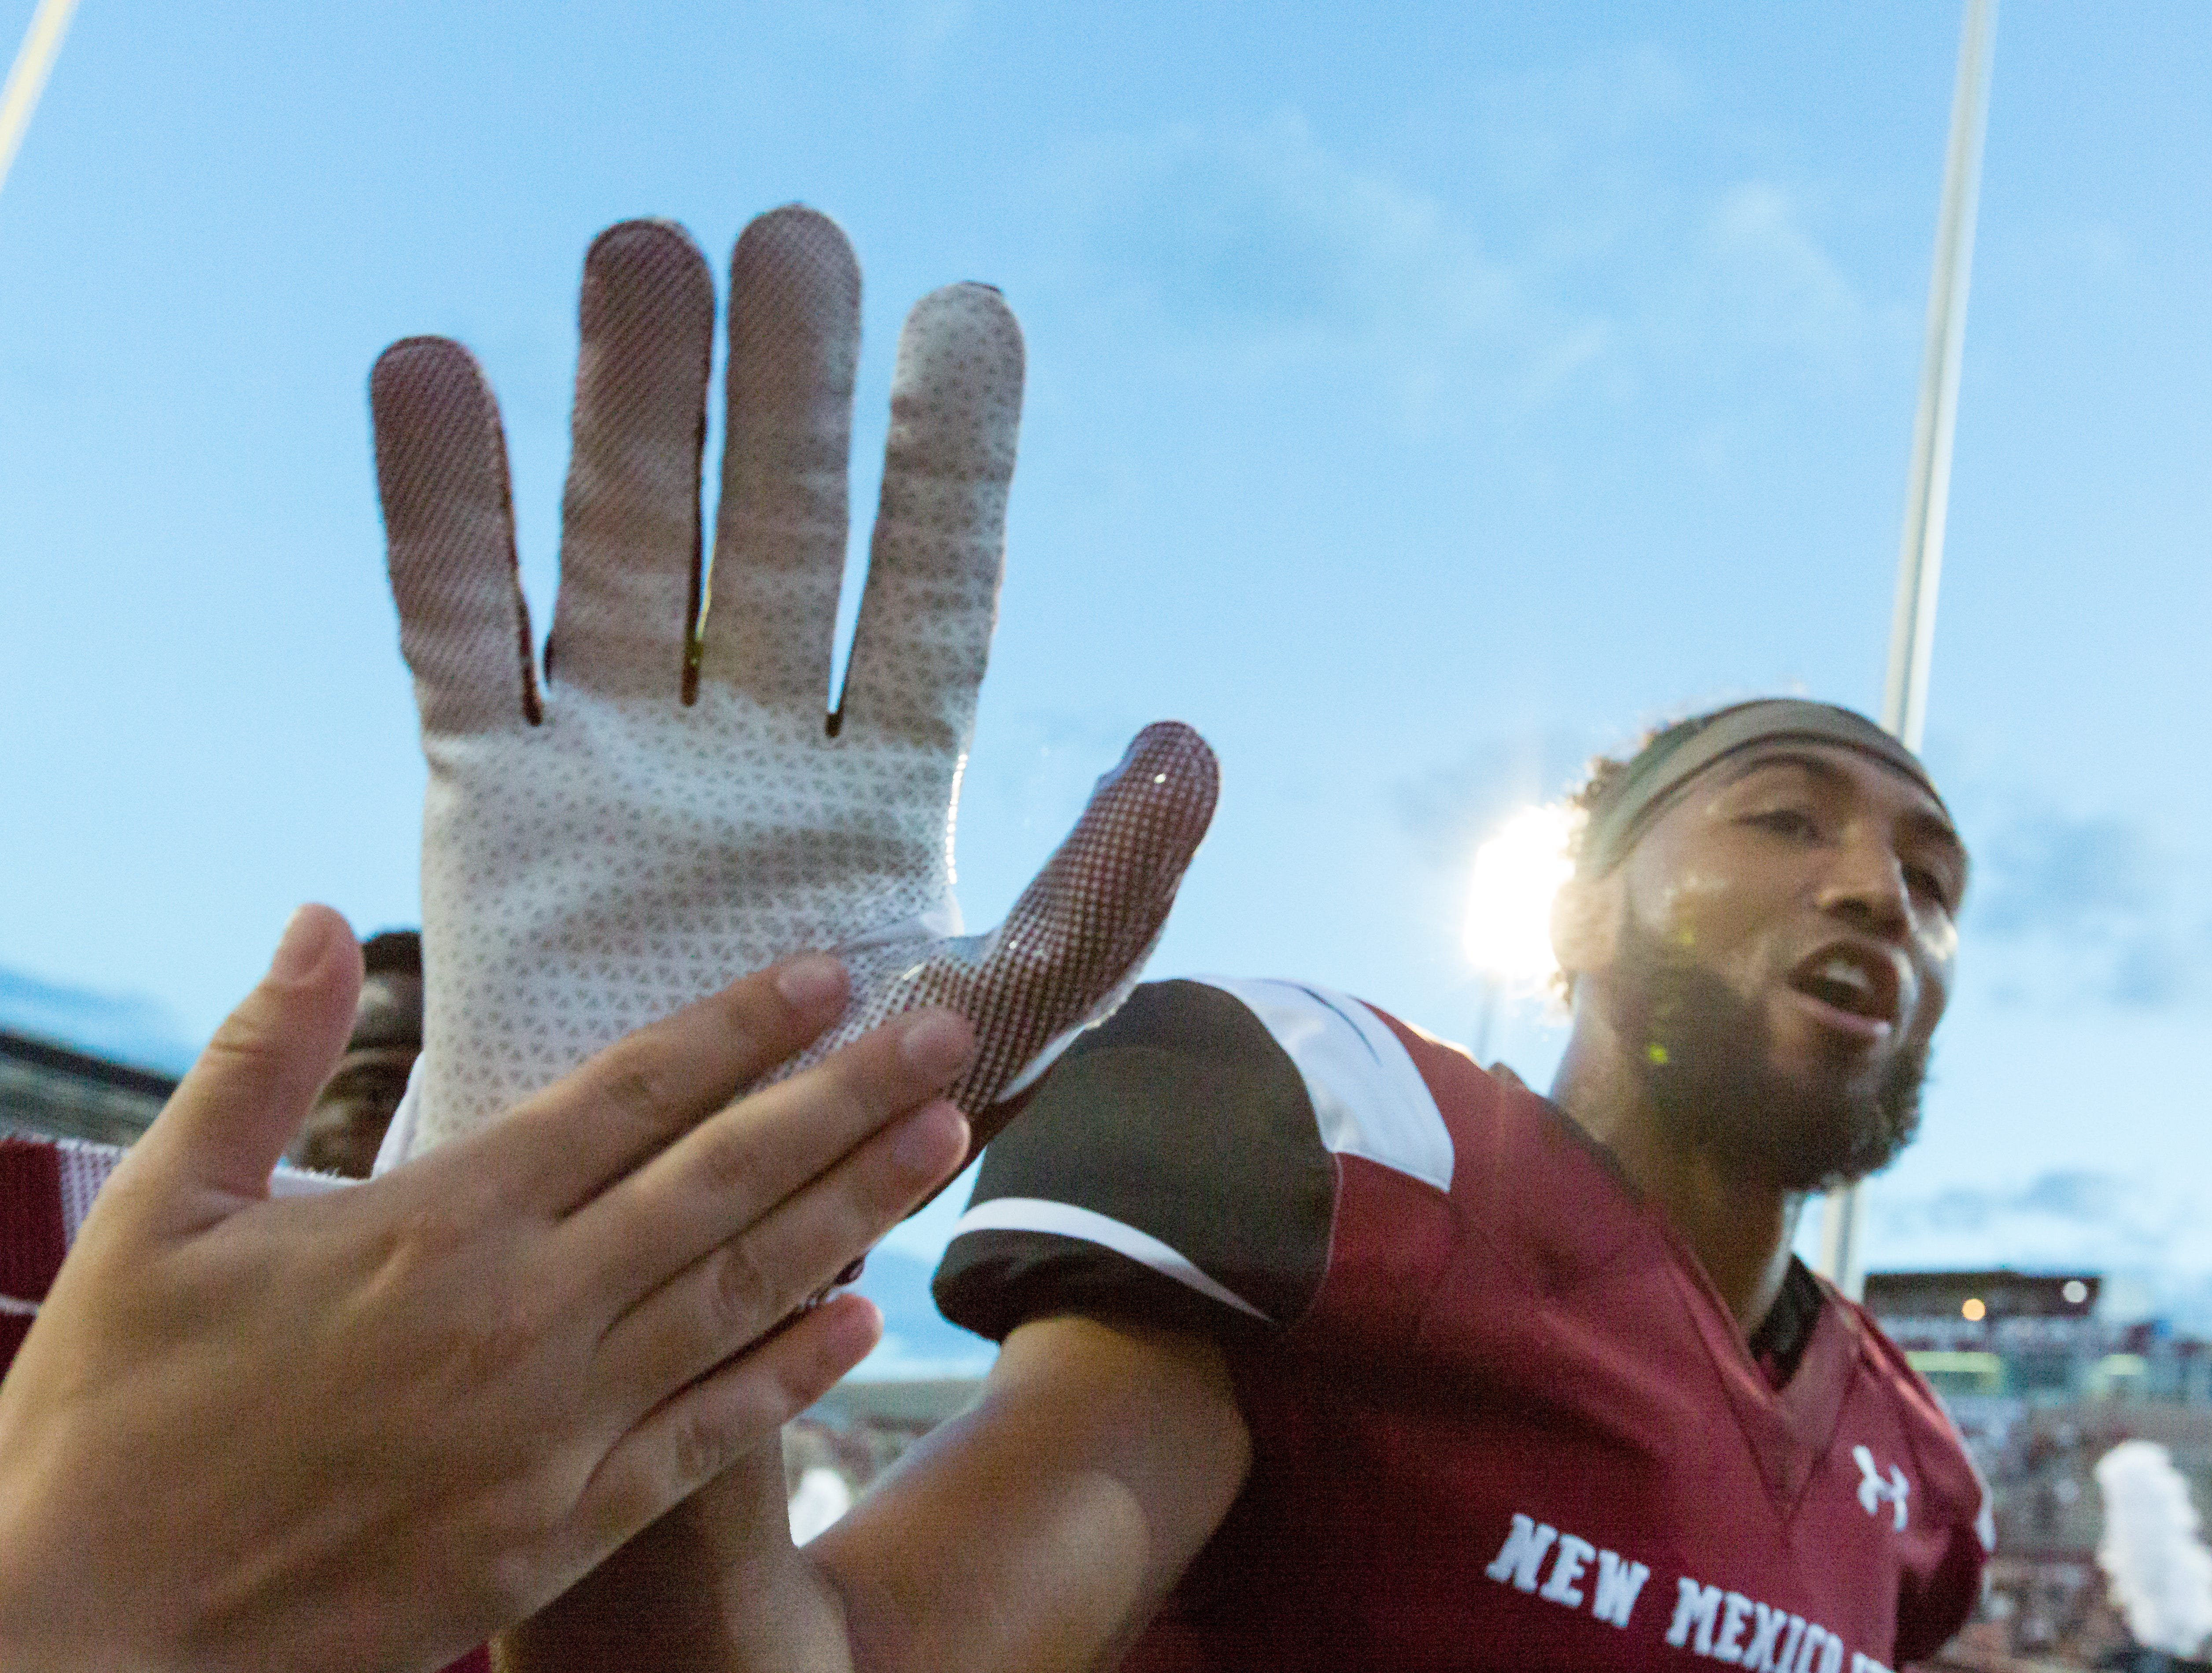 NMSU players give high fives before the game on Saturday, August 25, 2018, during the NMSU/Wyoming game at the Aggie Memorial Stadium.